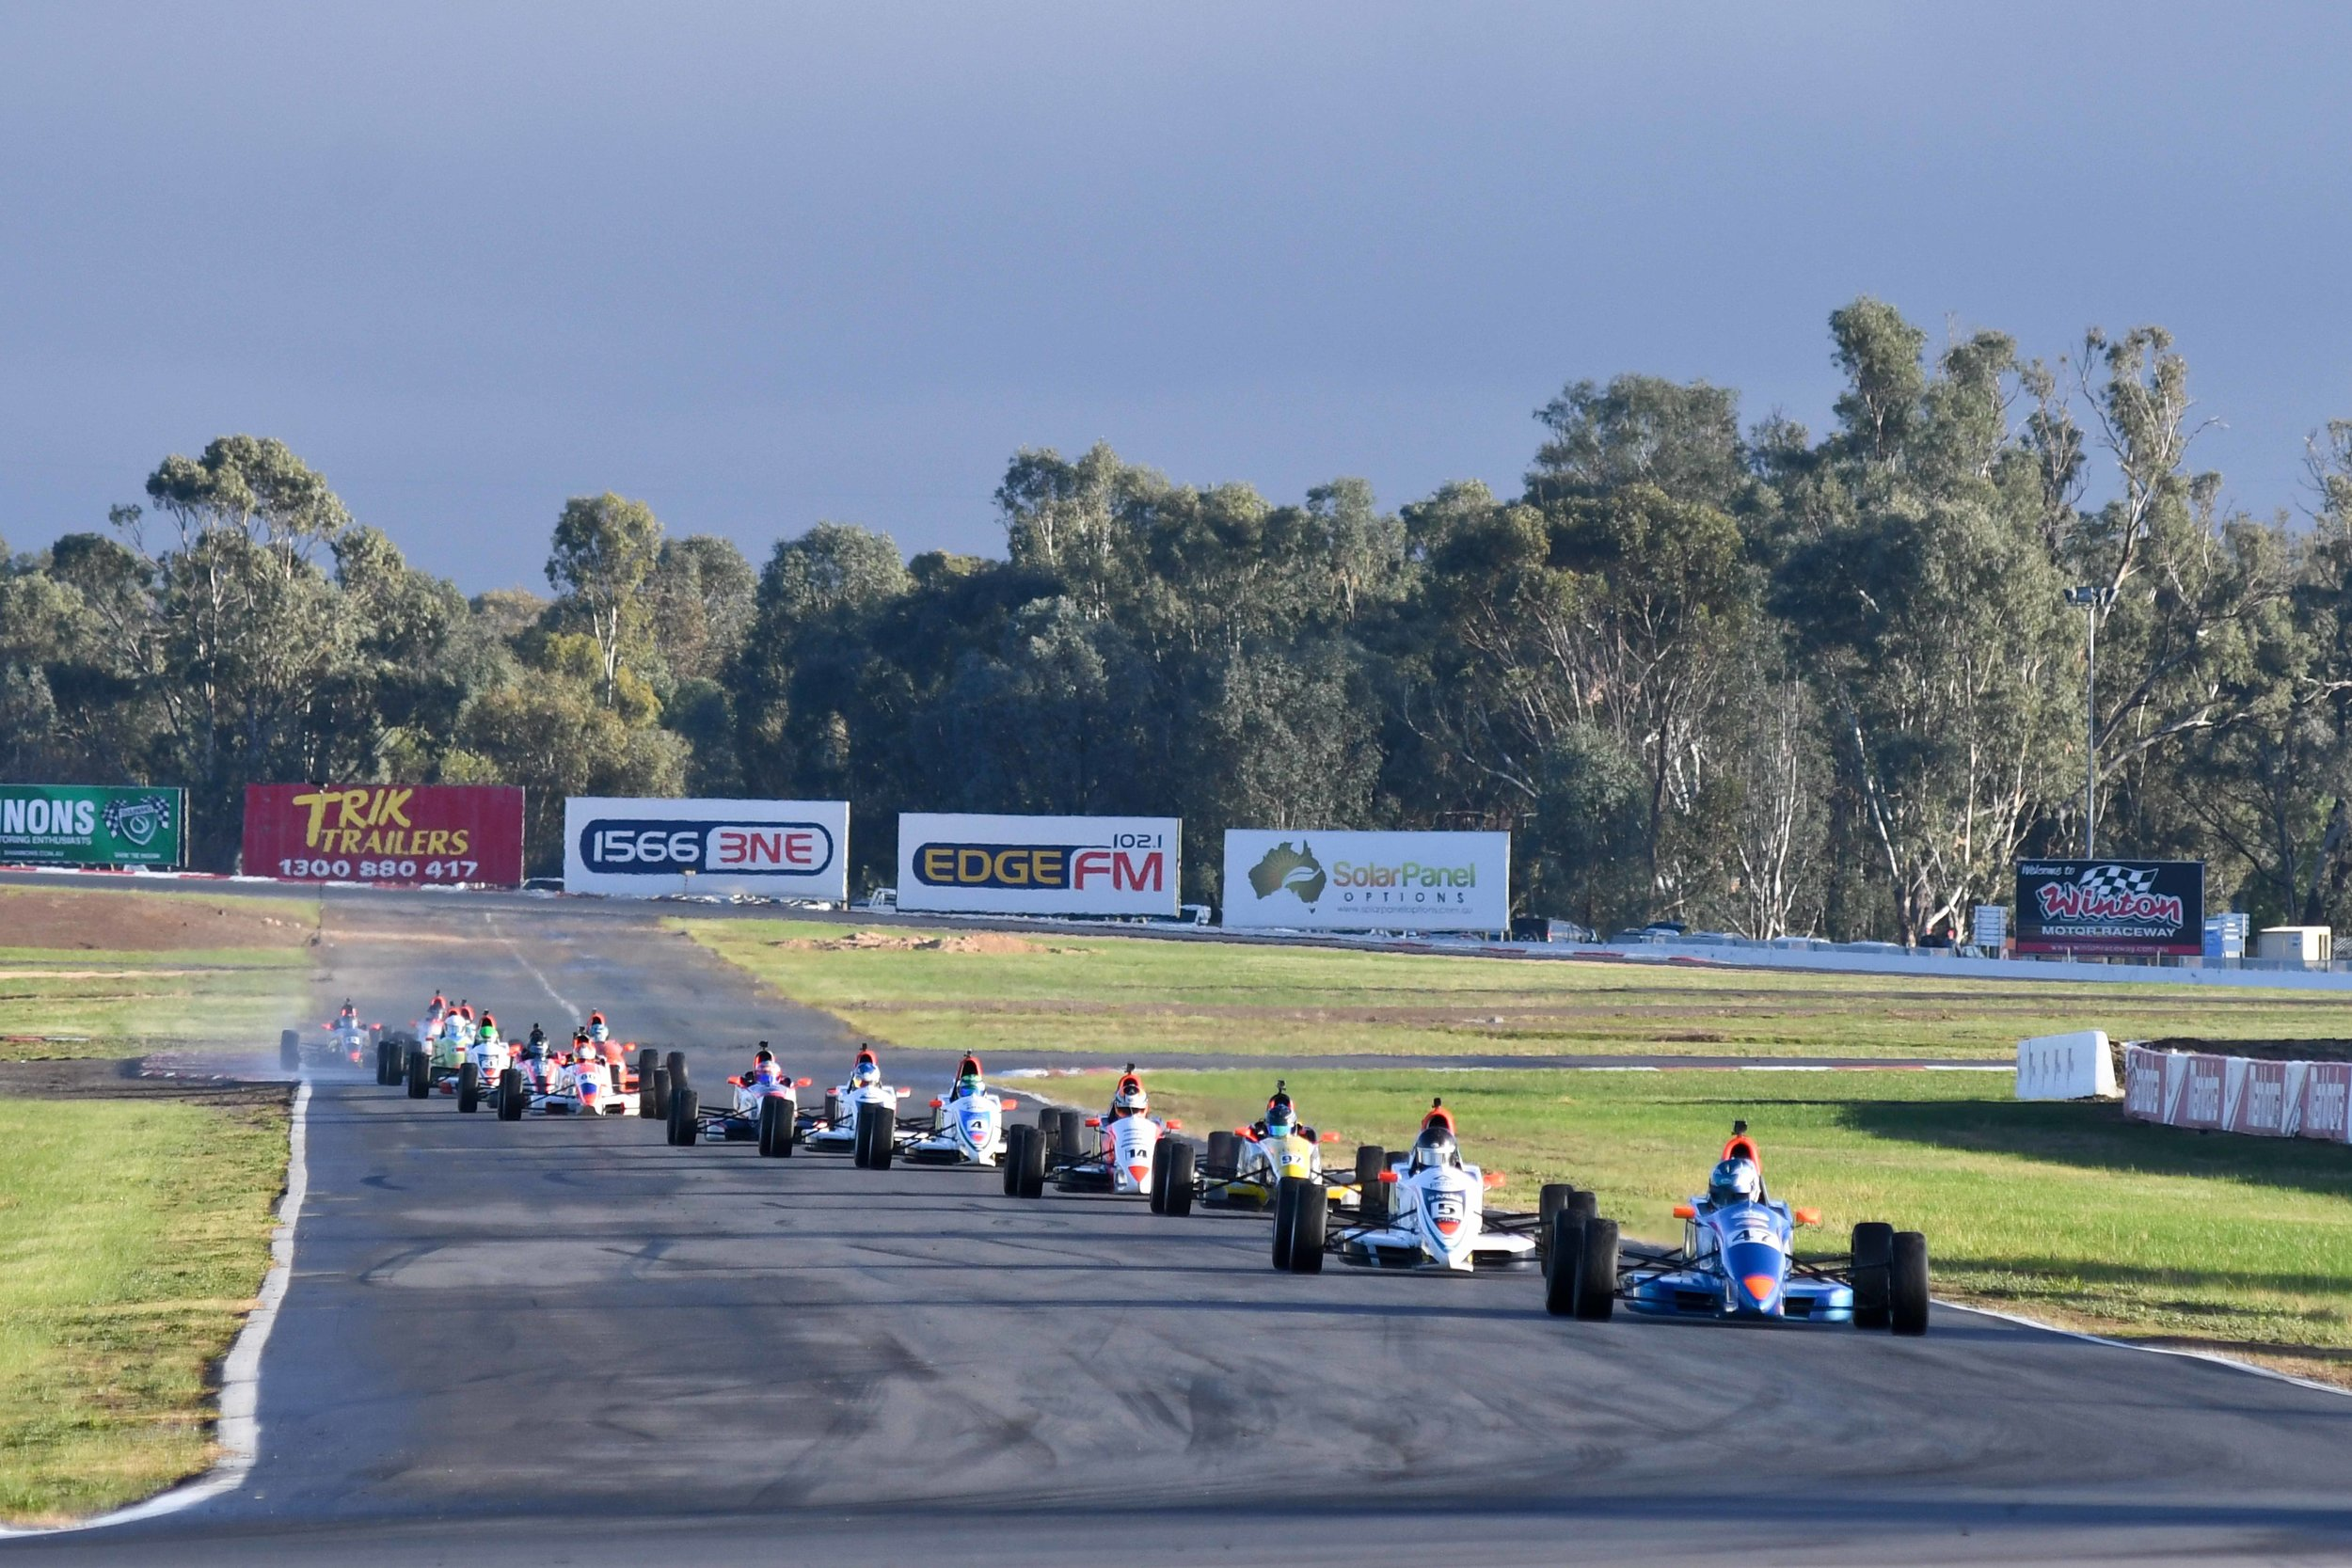 Tom Sargent leads the Formula Ford pack in race 2 ahead of Callum Hedge.